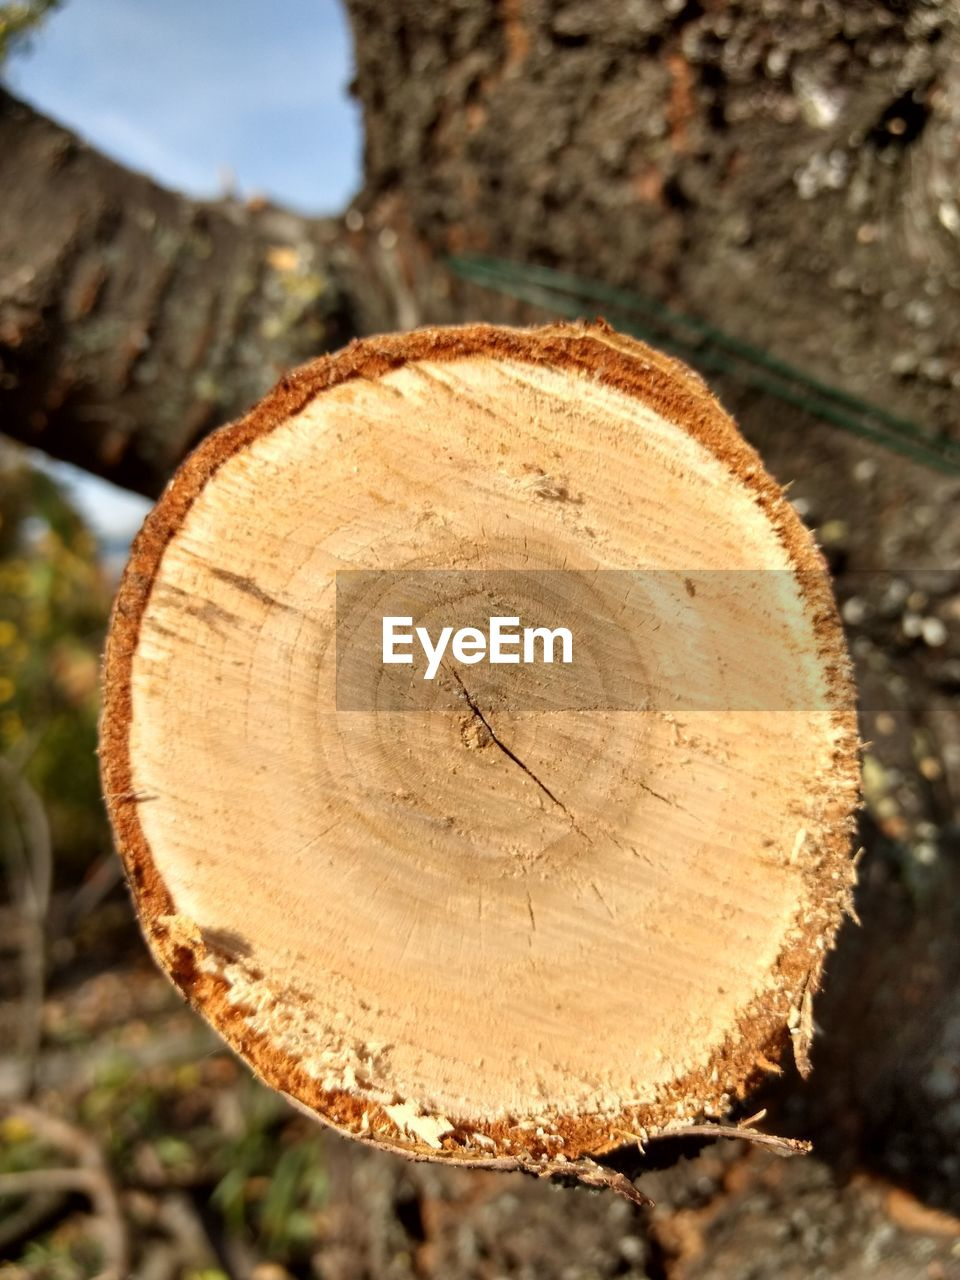 tree, close-up, cross section, wood, focus on foreground, wood - material, timber, forest, day, deforestation, shape, log, no people, nature, tree ring, land, textured, circle, bark, outdoors